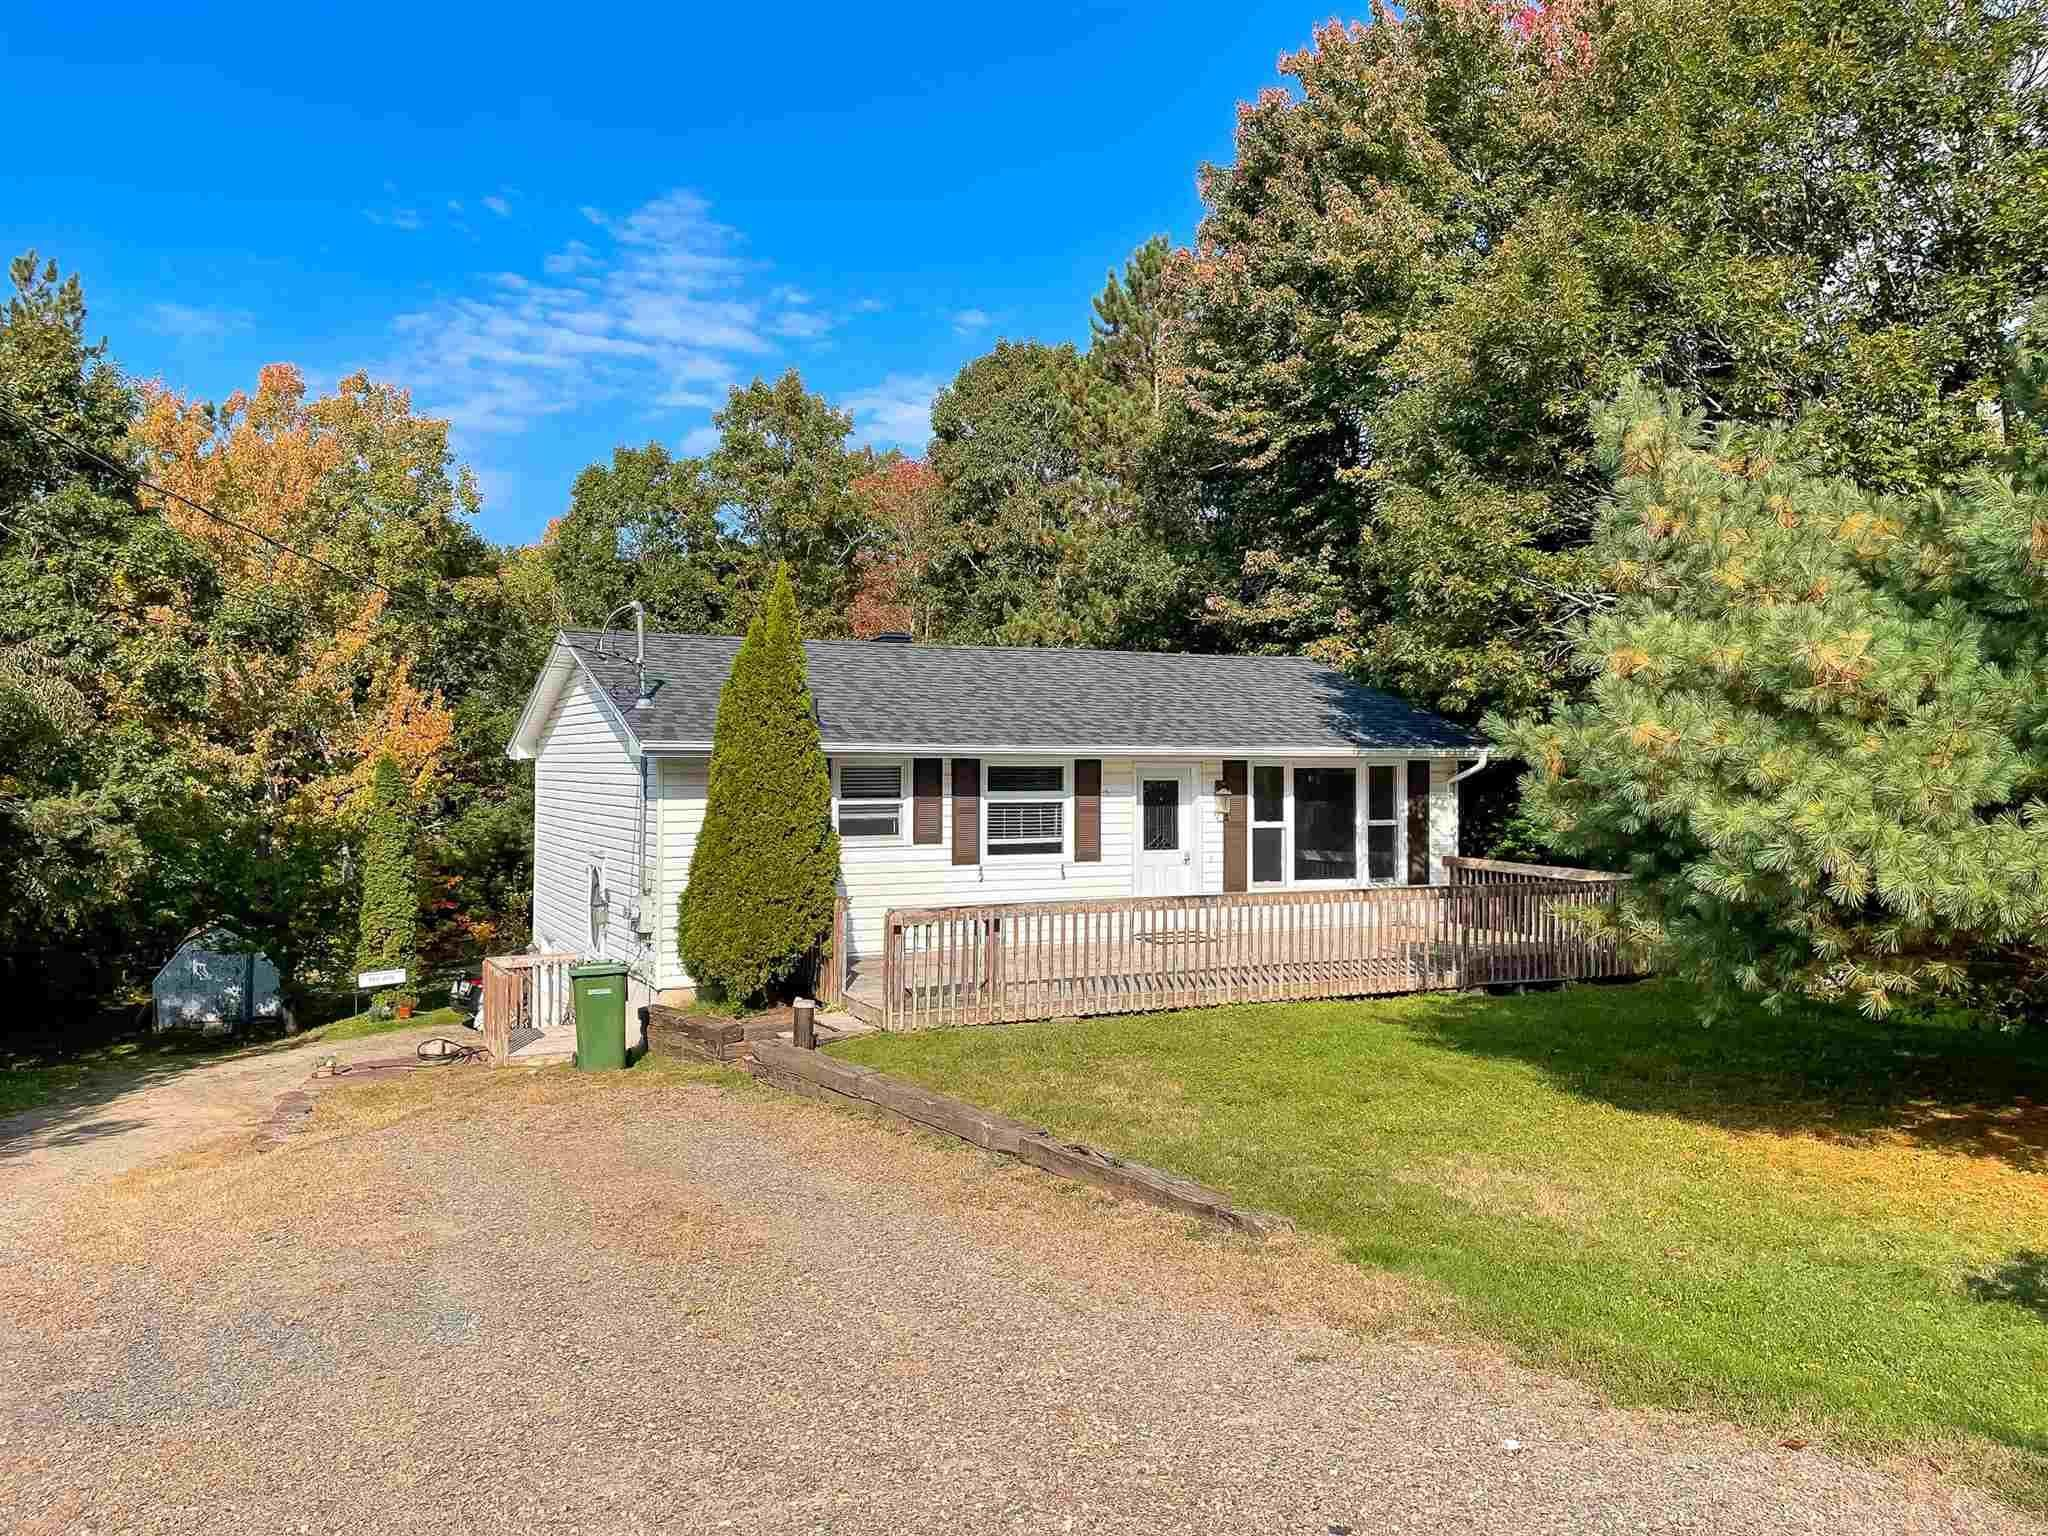 Main Photo: 2467 Loretta Avenue in Coldbrook: 404-Kings County Residential for sale (Annapolis Valley)  : MLS®# 202125866